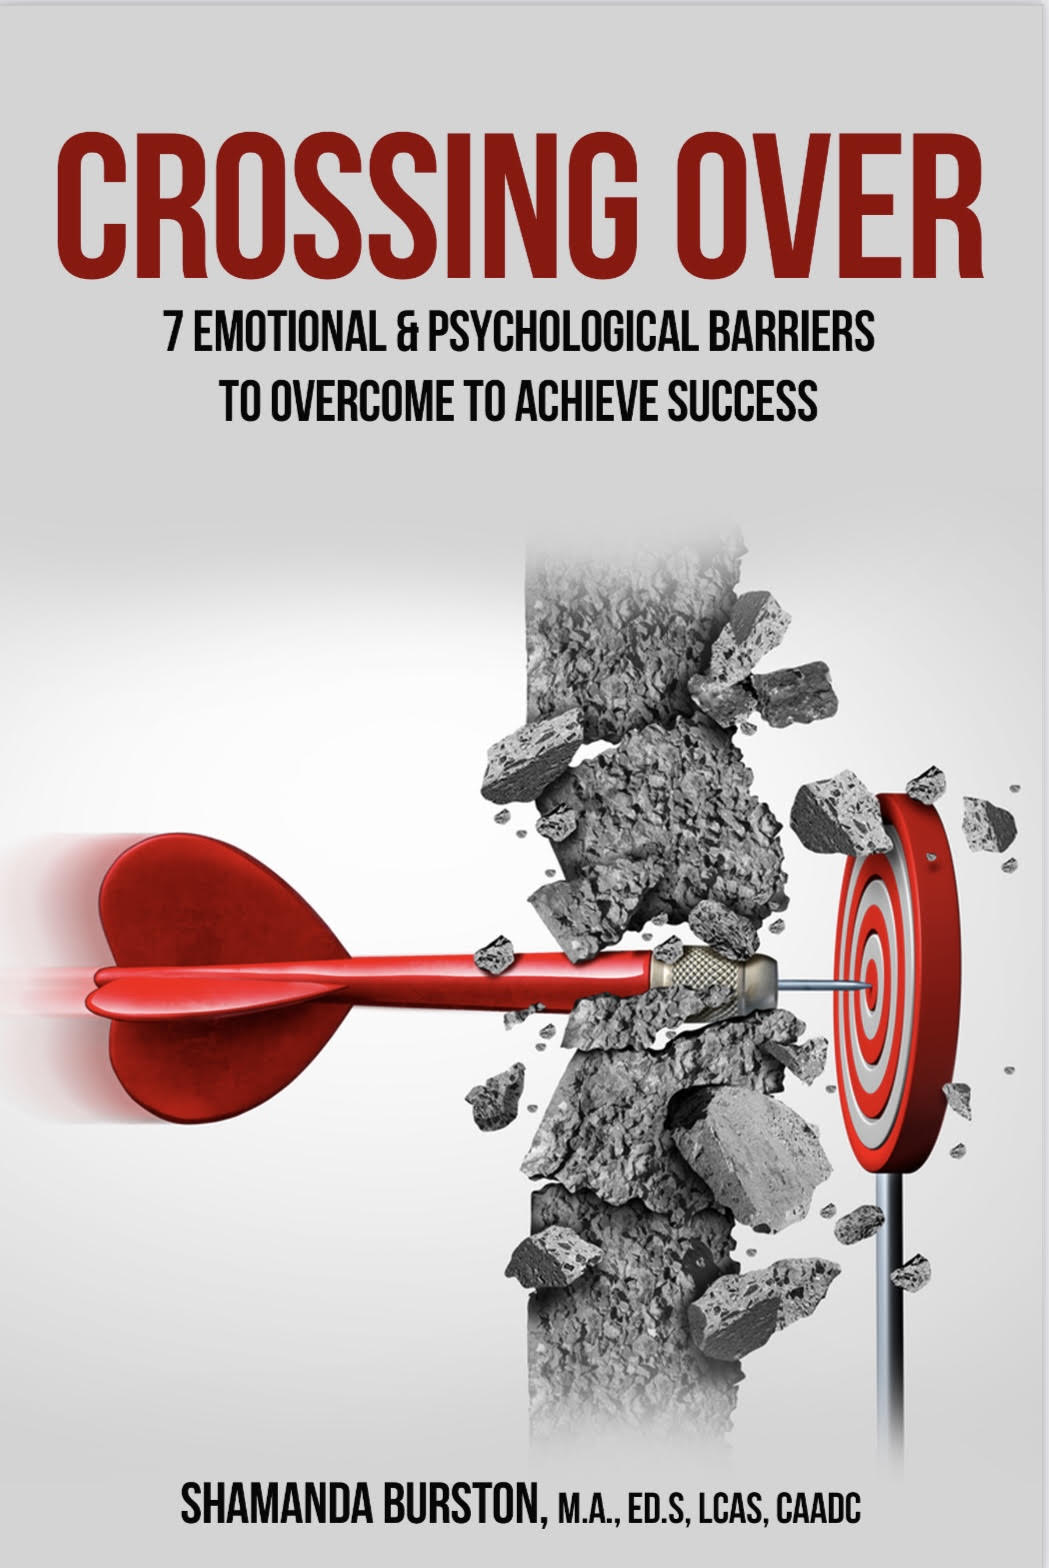 Crossing Over: 7 Emotional & Psychological Barriers To Overcome To Achieve Success (E-Book)